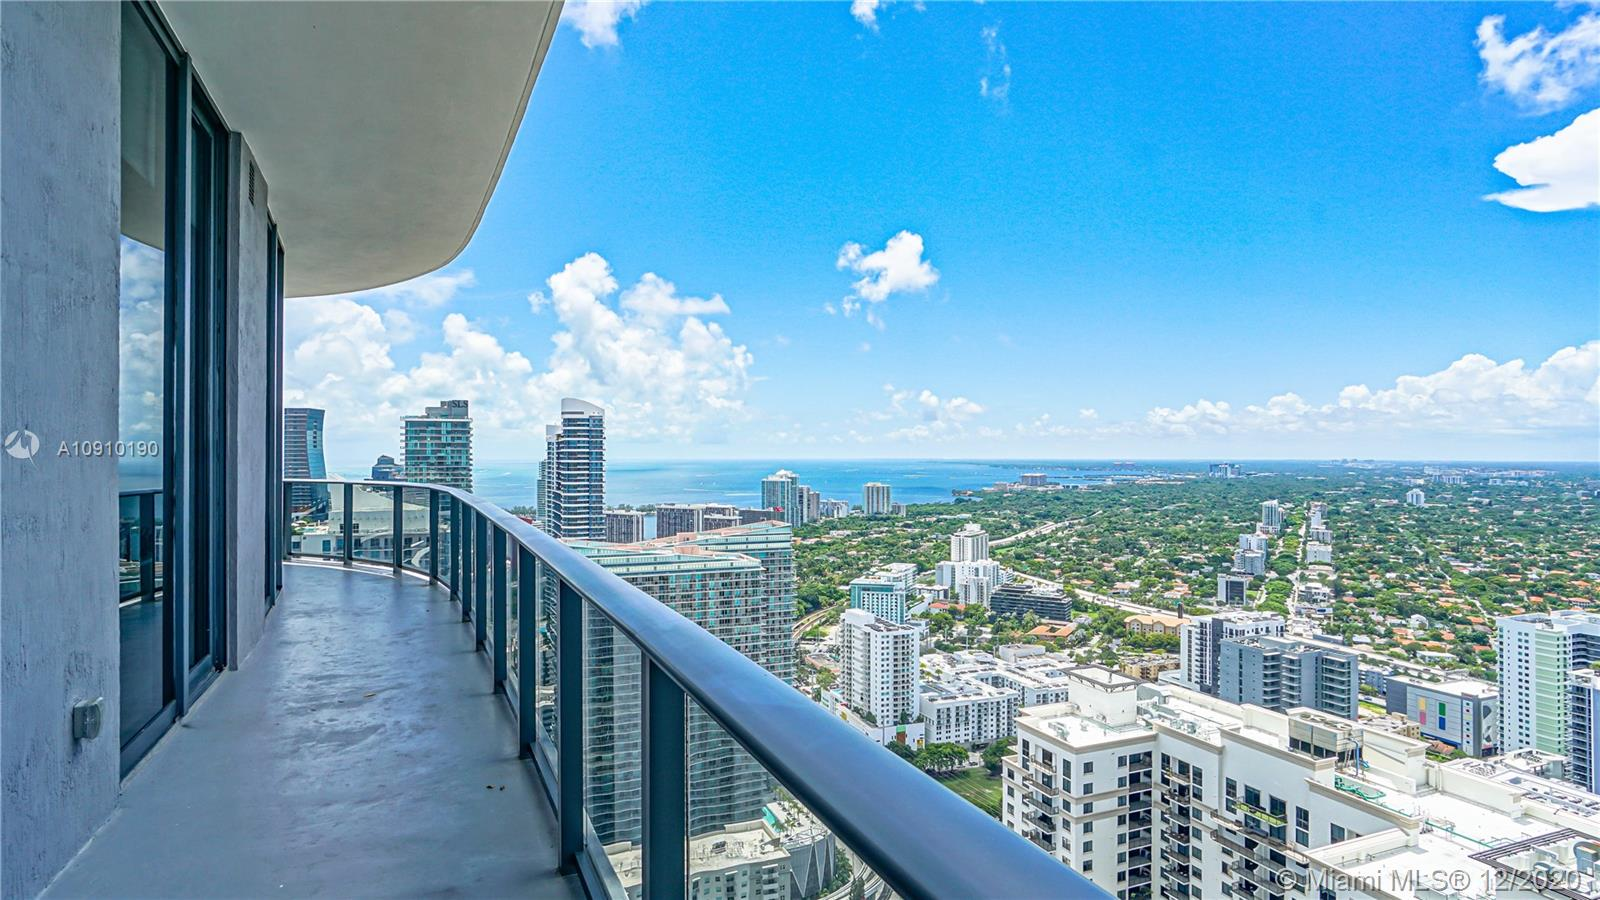 Stunning Penthouse located in the heart of Brickell! This magnificent unit has 4 bedrooms, 4.5 bathrooms & 2 parking spaces assigned. Unit has a guest powder room, porcelain floors throughout, each room has it's private bathroom, gourmet kitchen facing the Miami Skyline. High Ceilings with remote shades in the living room & 180-degree view with wrap around balcony, dramatic floor-to-ceiling high impact glass windows. Magnificent East, South & West exposure with open kitchen with top of the line appliances. Best amenities featuring sauna, rooftop pool, clubhouse, billiard room, outdoor fitness area, steam room, child's play area, business center & the world-famous Equinox Fitness Center. Walking distance to the best restaurants in the area & Brickell City Center mall. CLICK ON VIRTUAL TOUR!